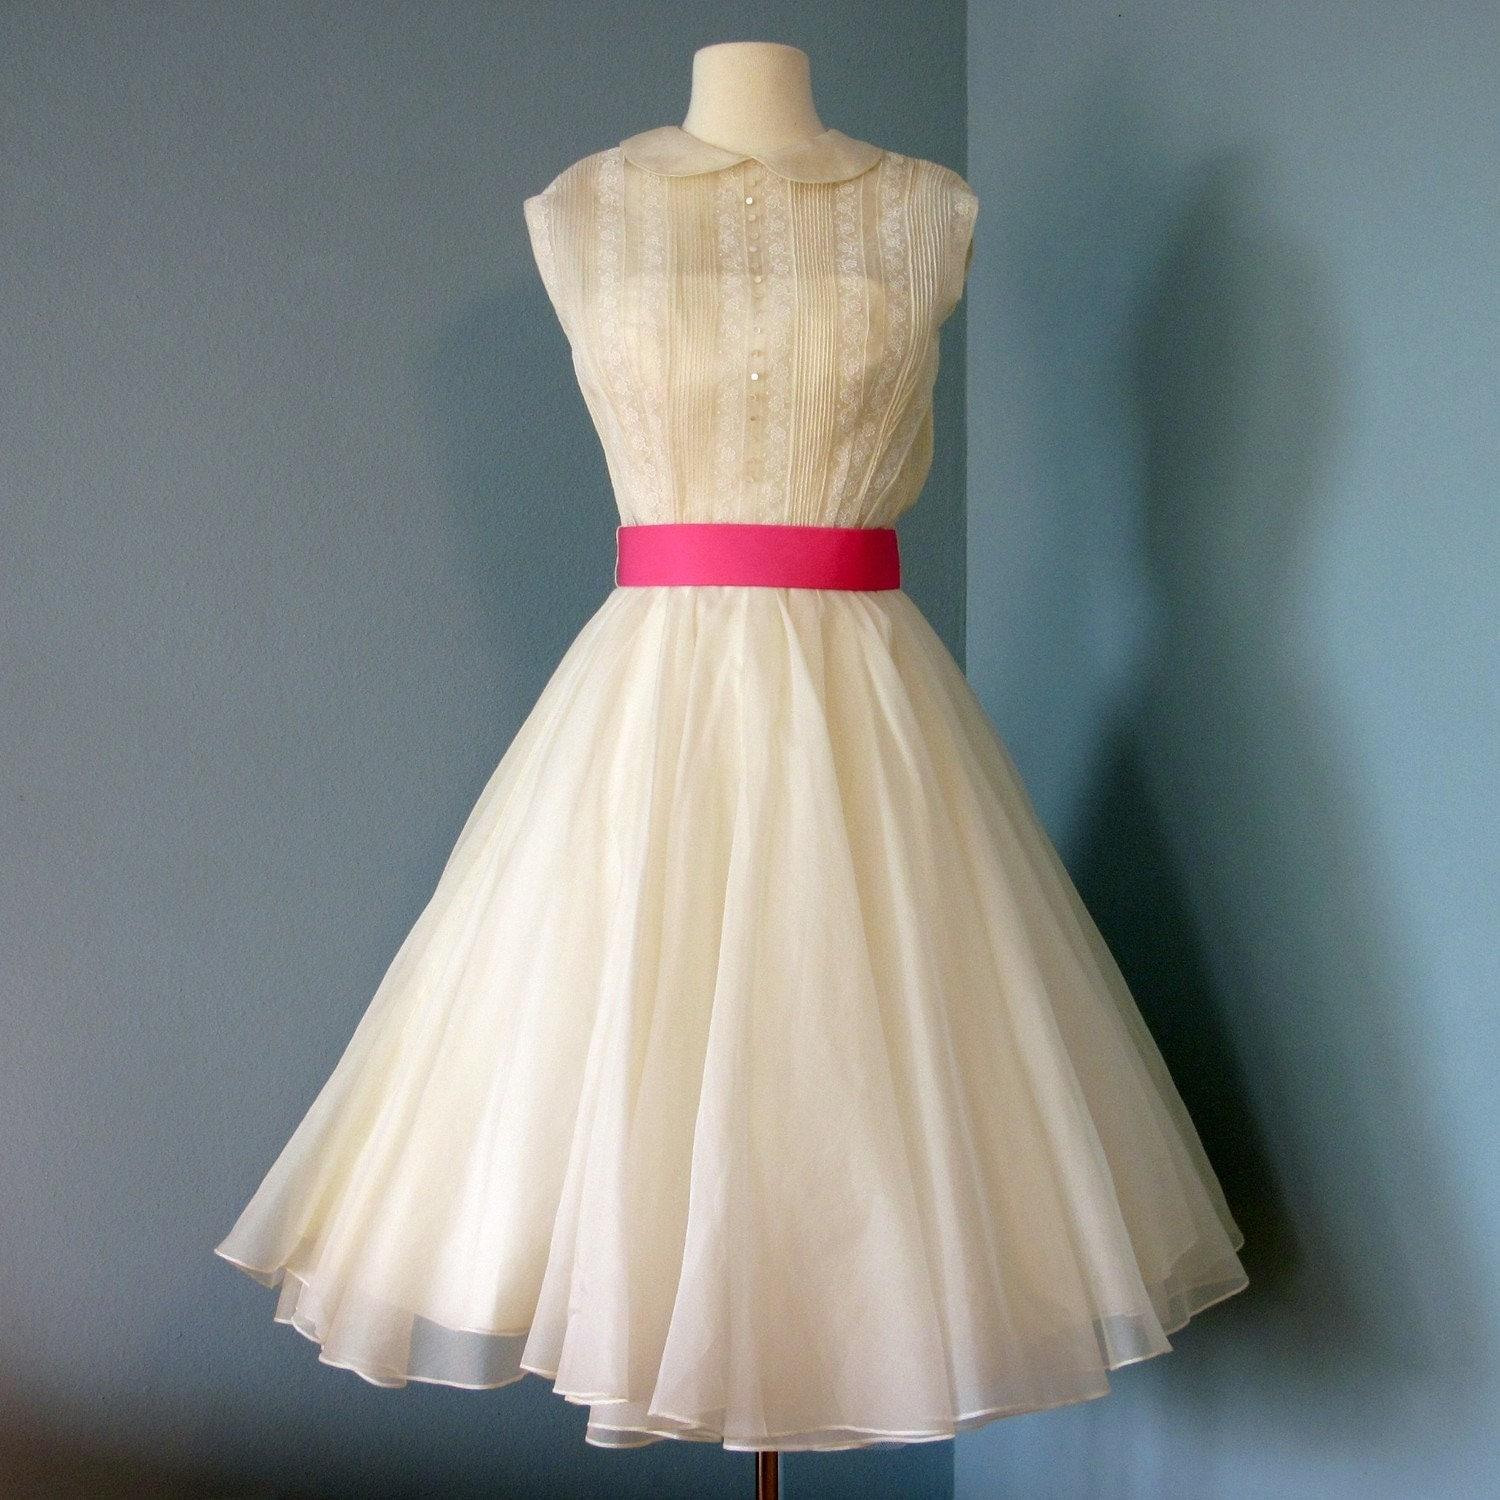 Vintage Wedding Dresses Nyc: Vintage 1950s Or 1960s Wilshires Bullock Ivory Organdy By